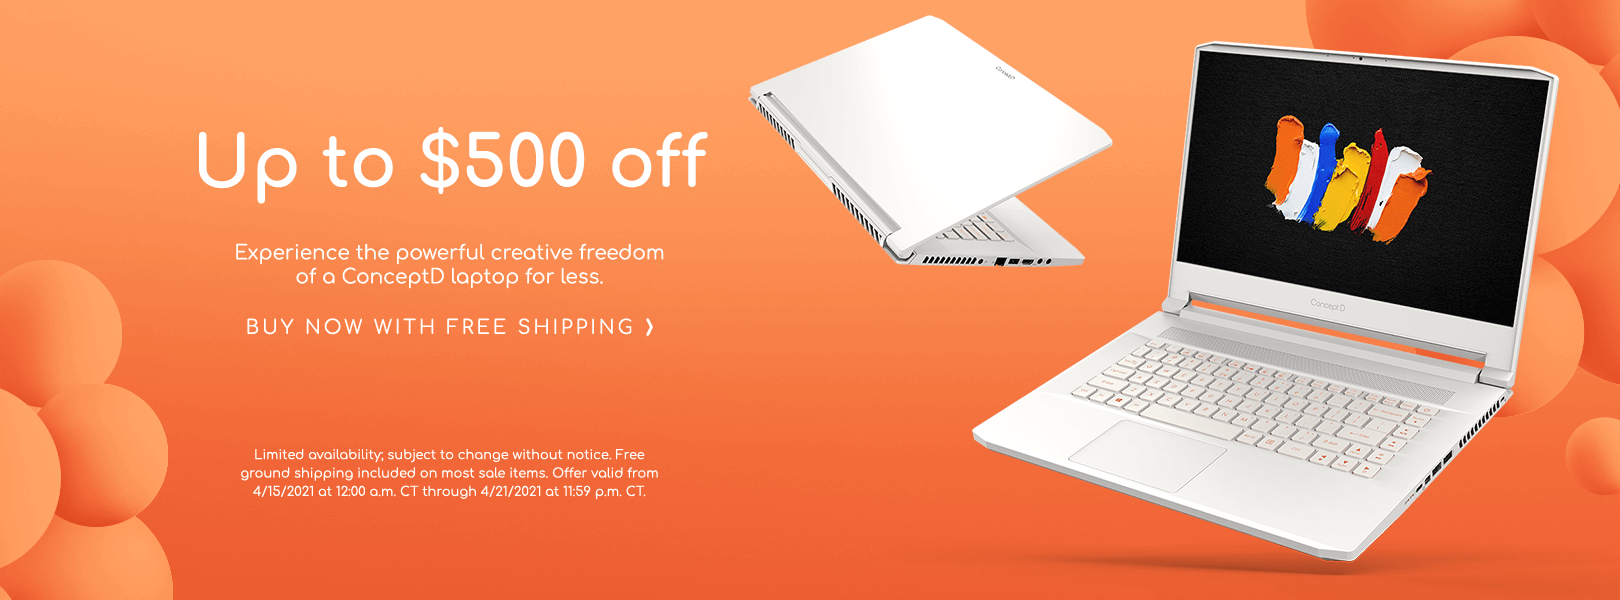 Save up to $500 on a ConceptD Laptop